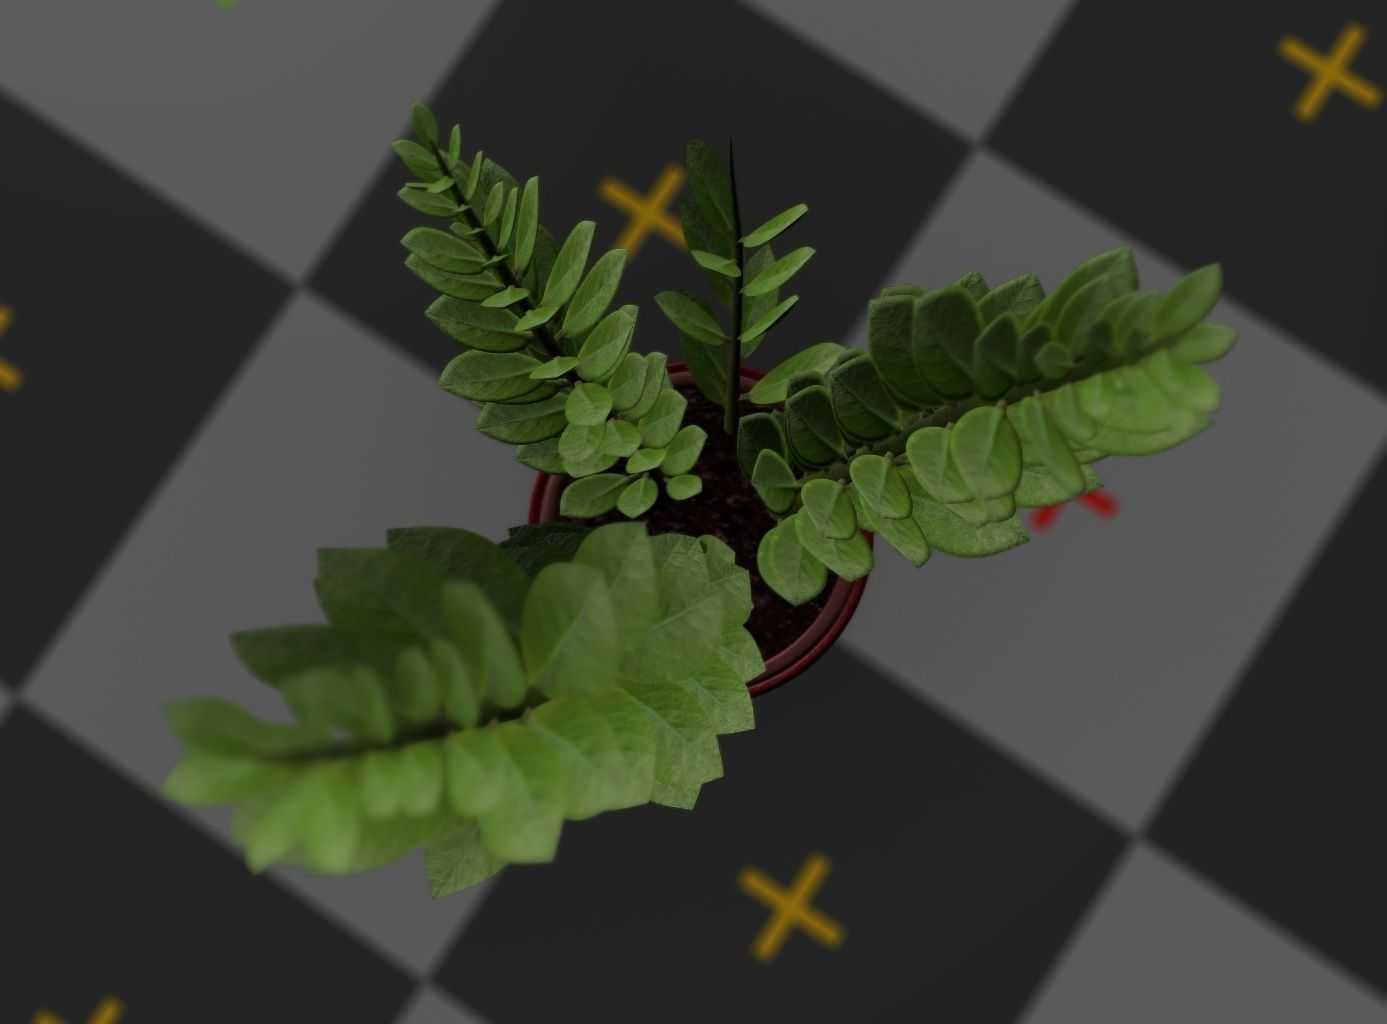 3d-model-indoor-plant-rigged-low-poly-jpg-23